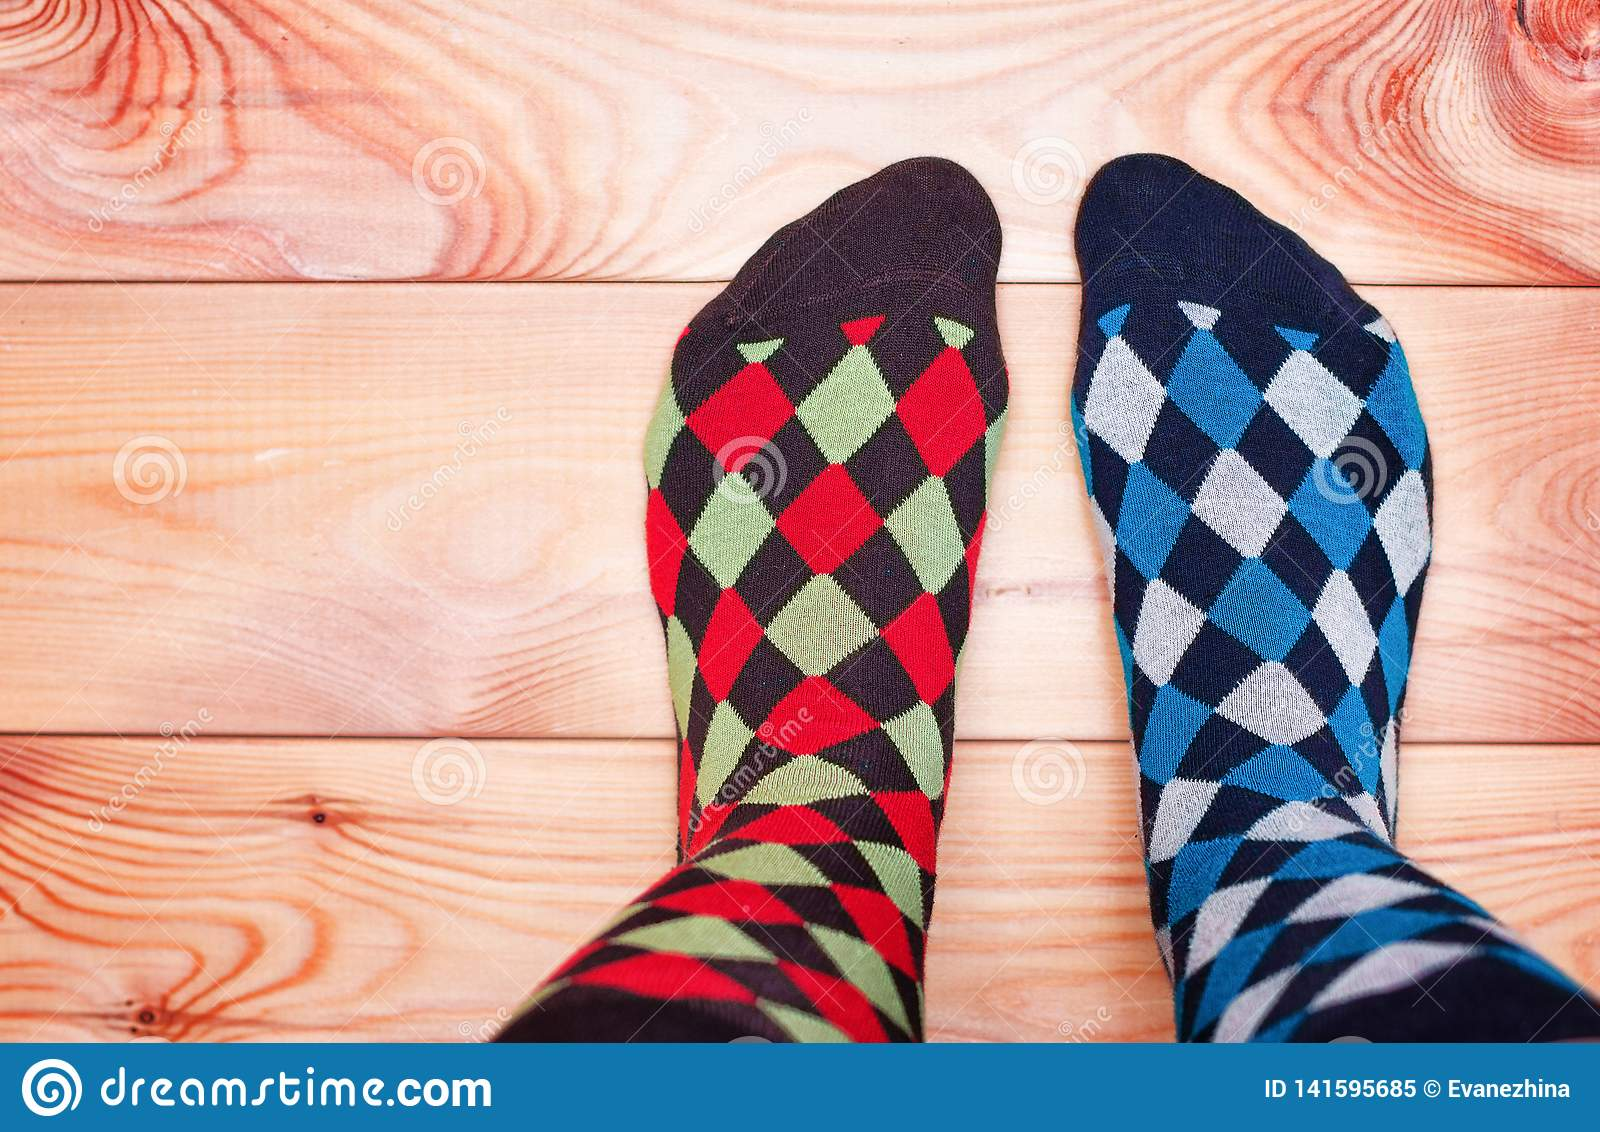 Two legs in different motley socks on a wooden floor